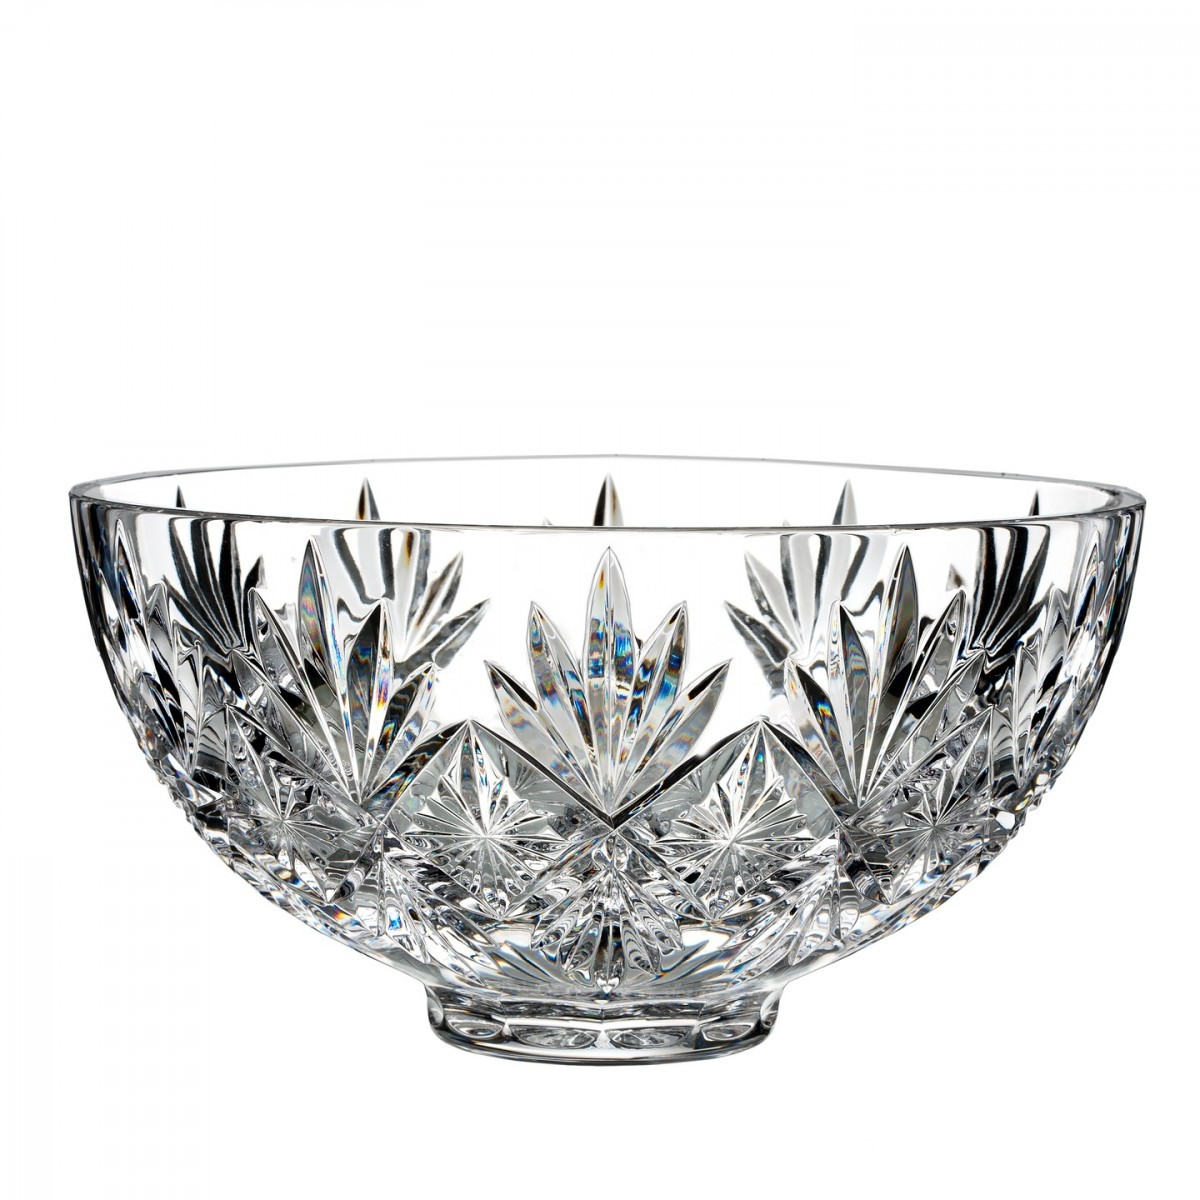 waterford vases discontinued of normandy bowl discontinued waterford us regarding normandy bowl discontinued